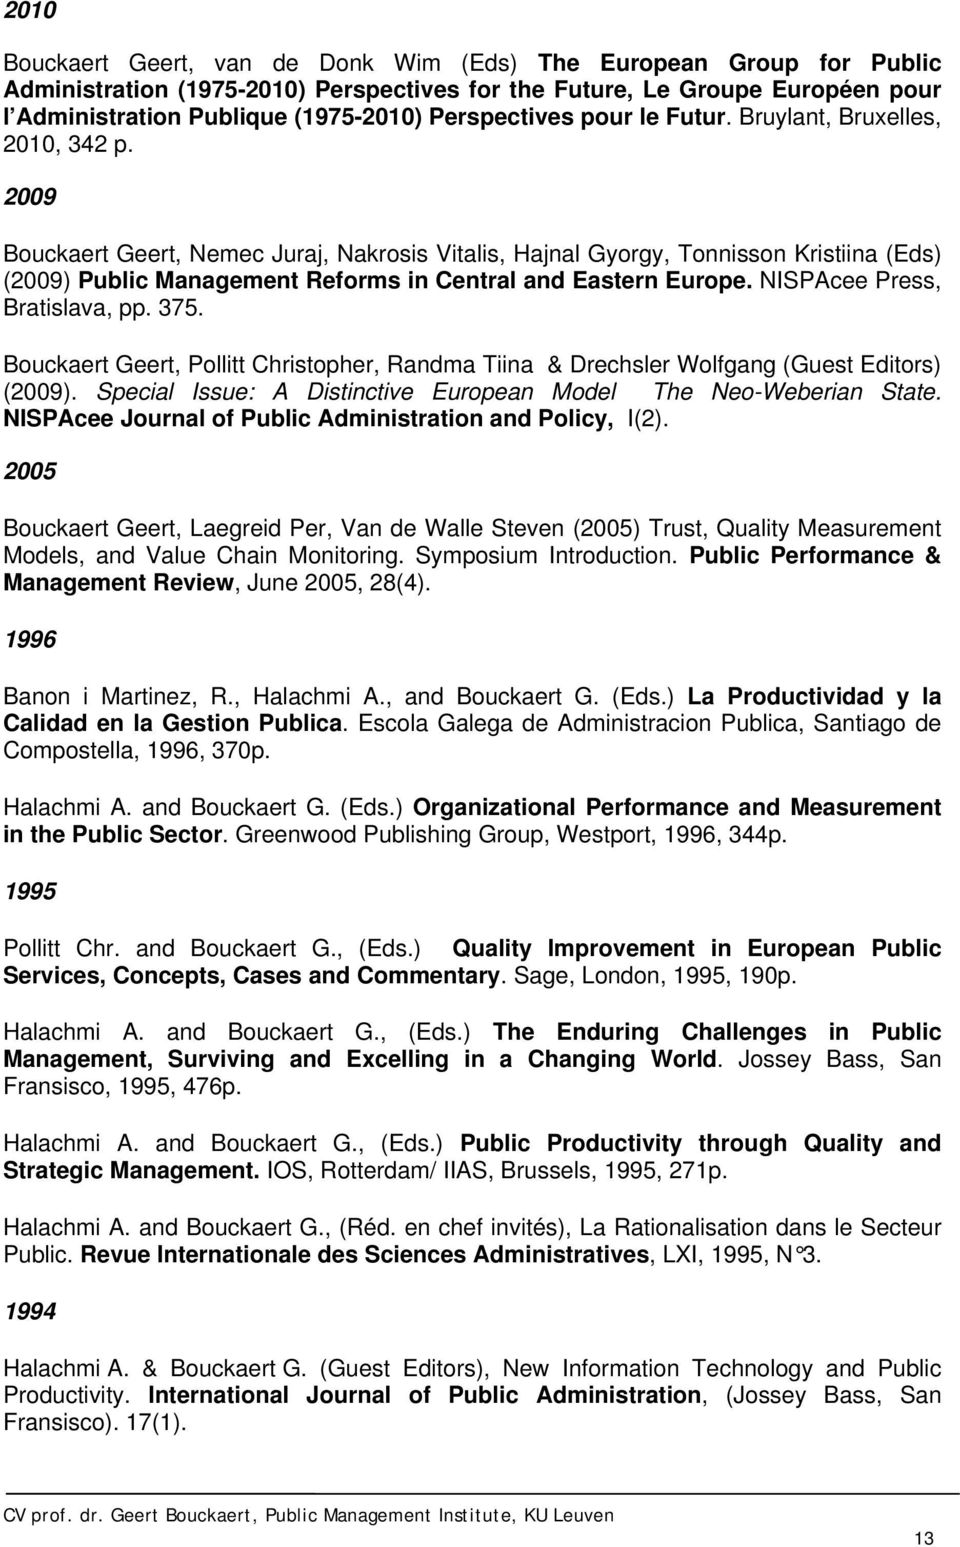 2009 Bouckaert Geert, Nemec Juraj, Nakrosis Vitalis, Hajnal Gyorgy, Tonnisson Kristiina (Eds) (2009) Public Management Reforms in Central and Eastern Europe. NISPAcee Press, Bratislava, pp. 375.